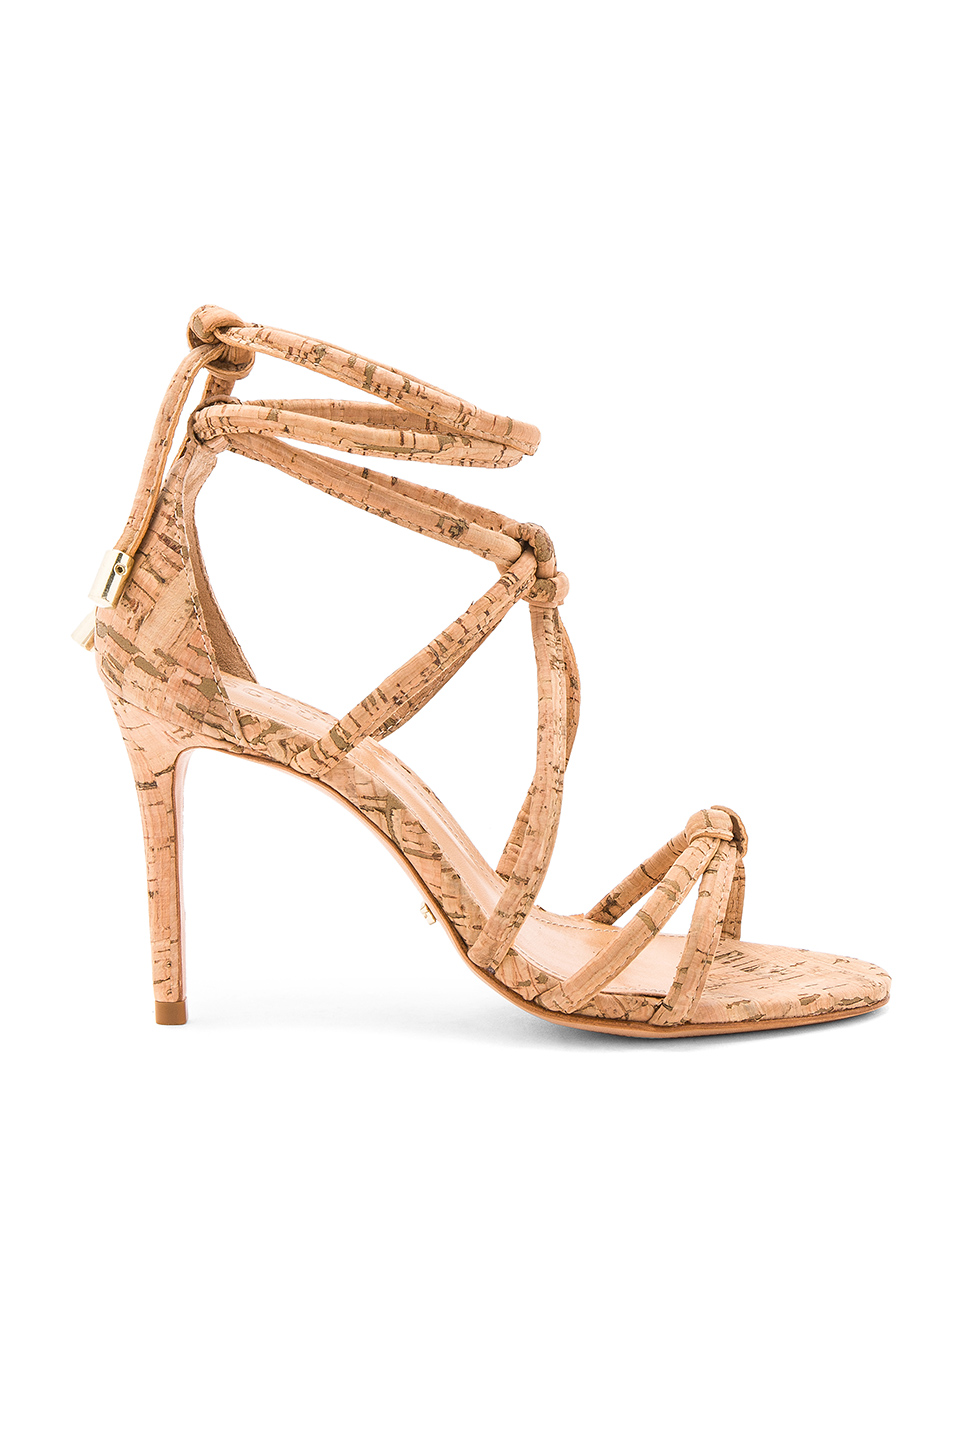 Schutz Nadira Heel in Natural